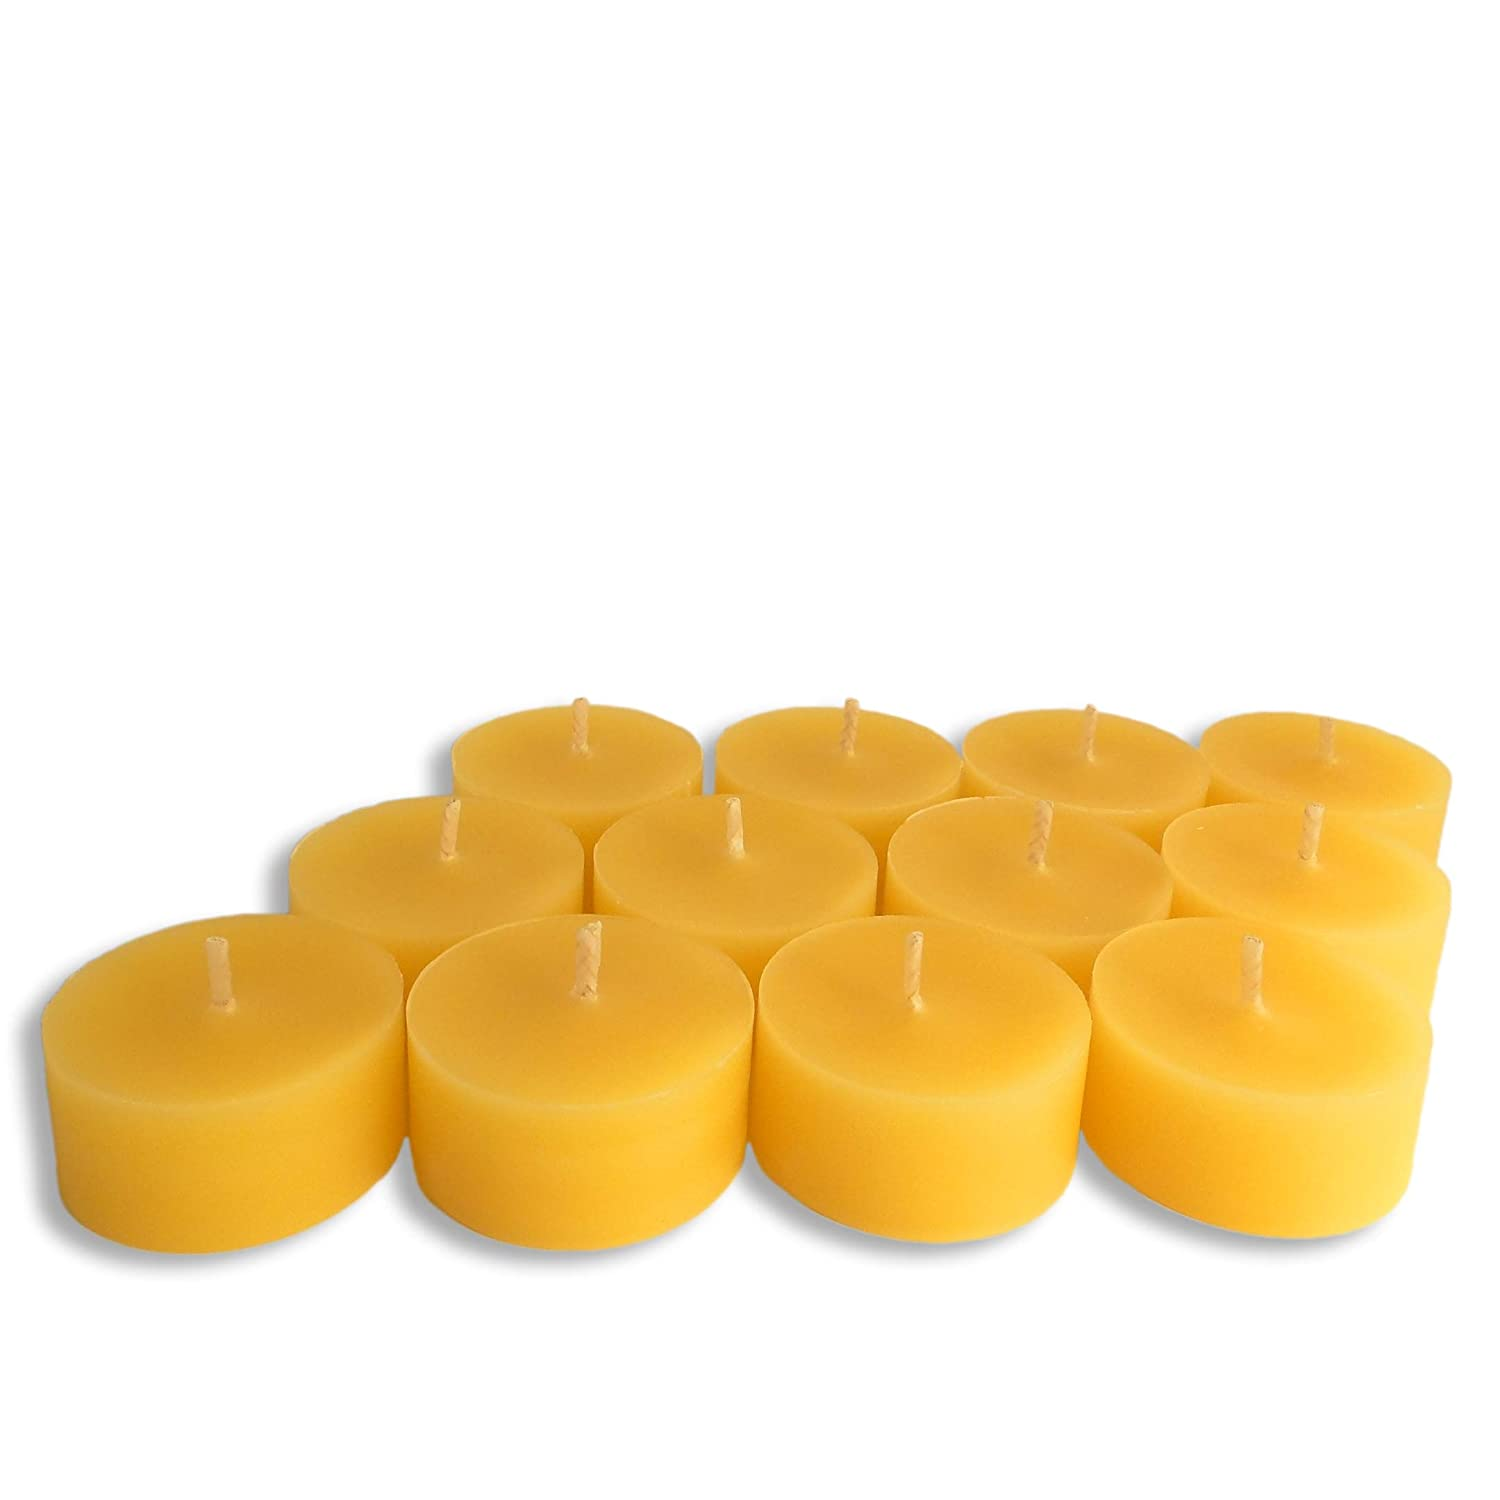 BCandle 100% Pure Beeswax Tea Light REFILLS (no cup) (6)